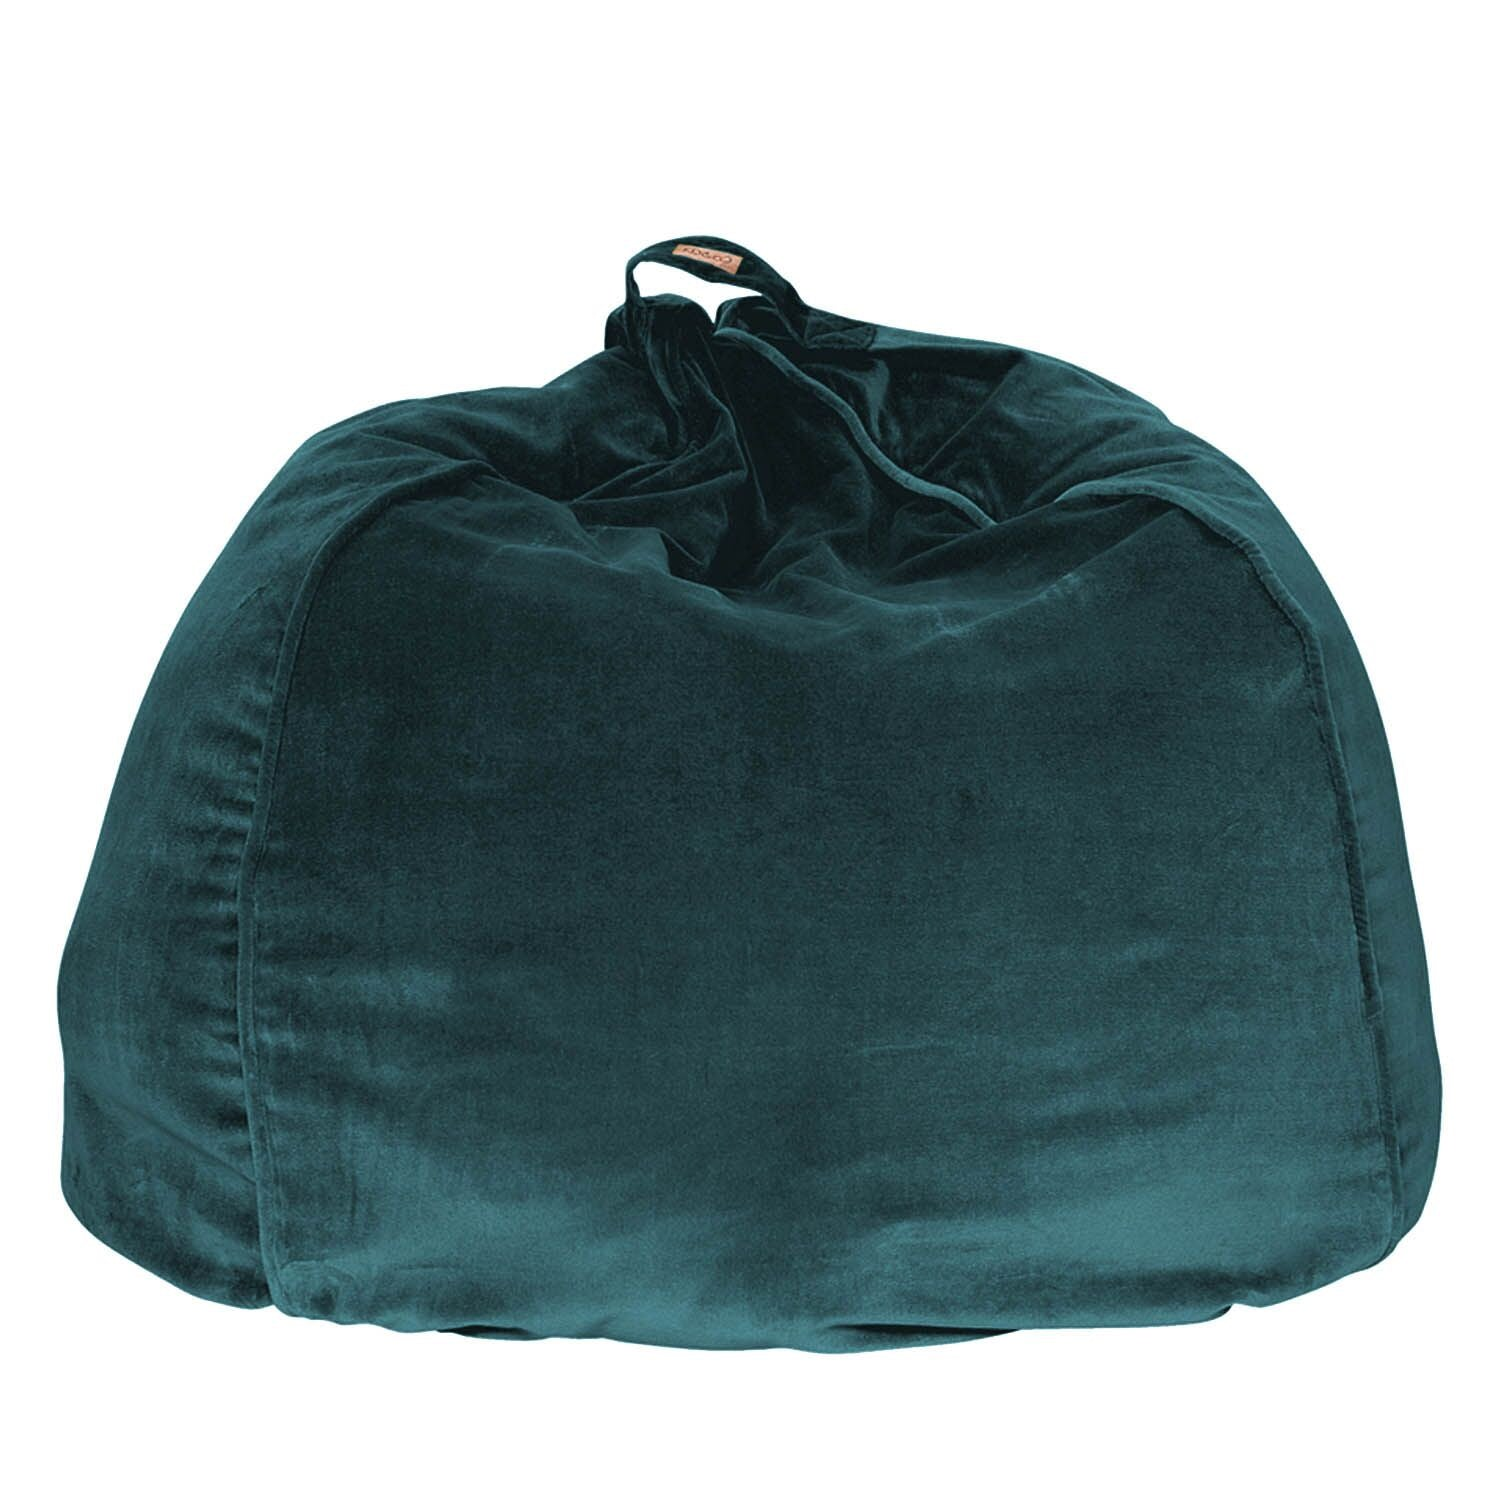 Kip & Co Alpine Green Velvet Beanbag - The Artisan Storeroom